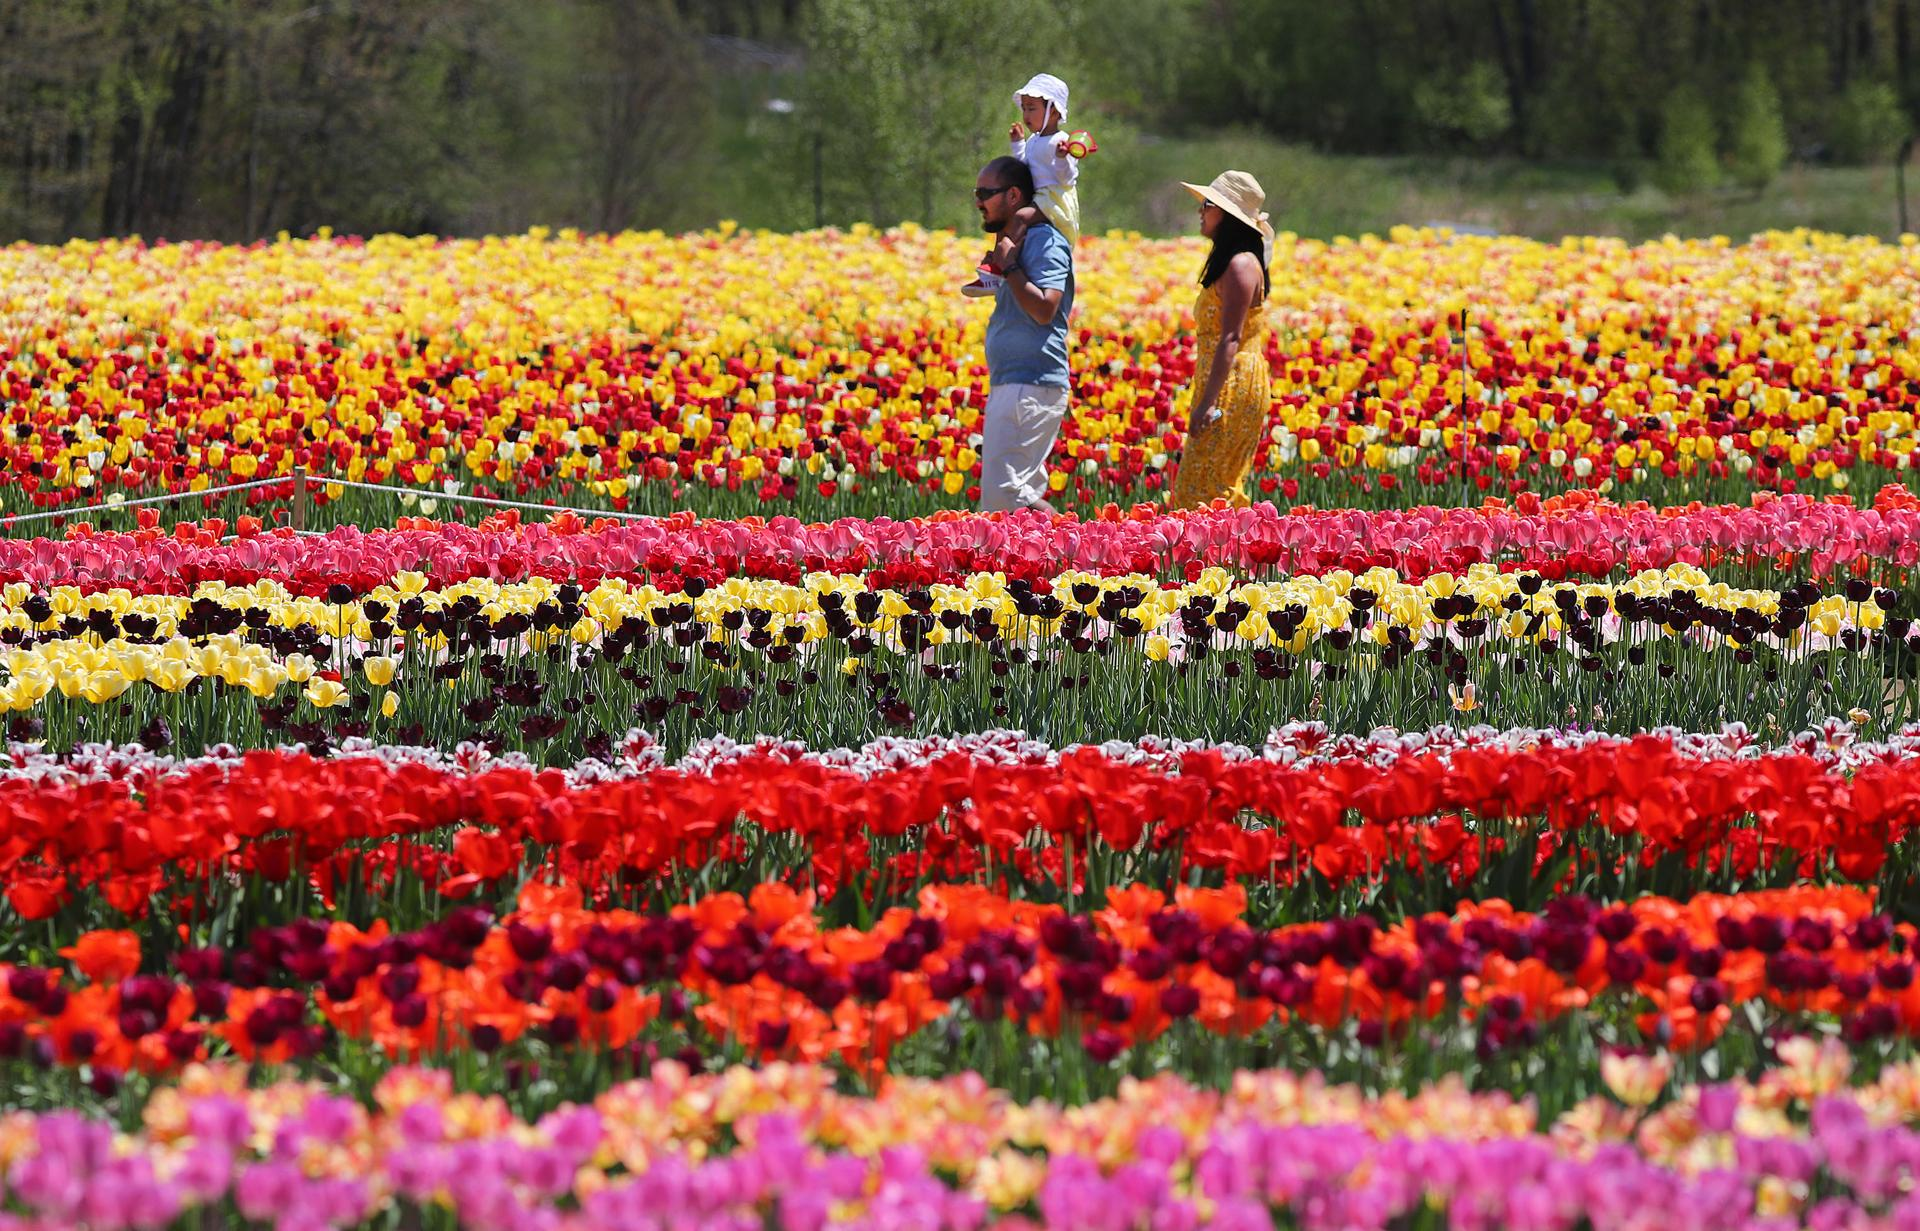 People walked through the tulips at Wicked Tulips Flower Farm in Johnston, R.I., on Wednesday.